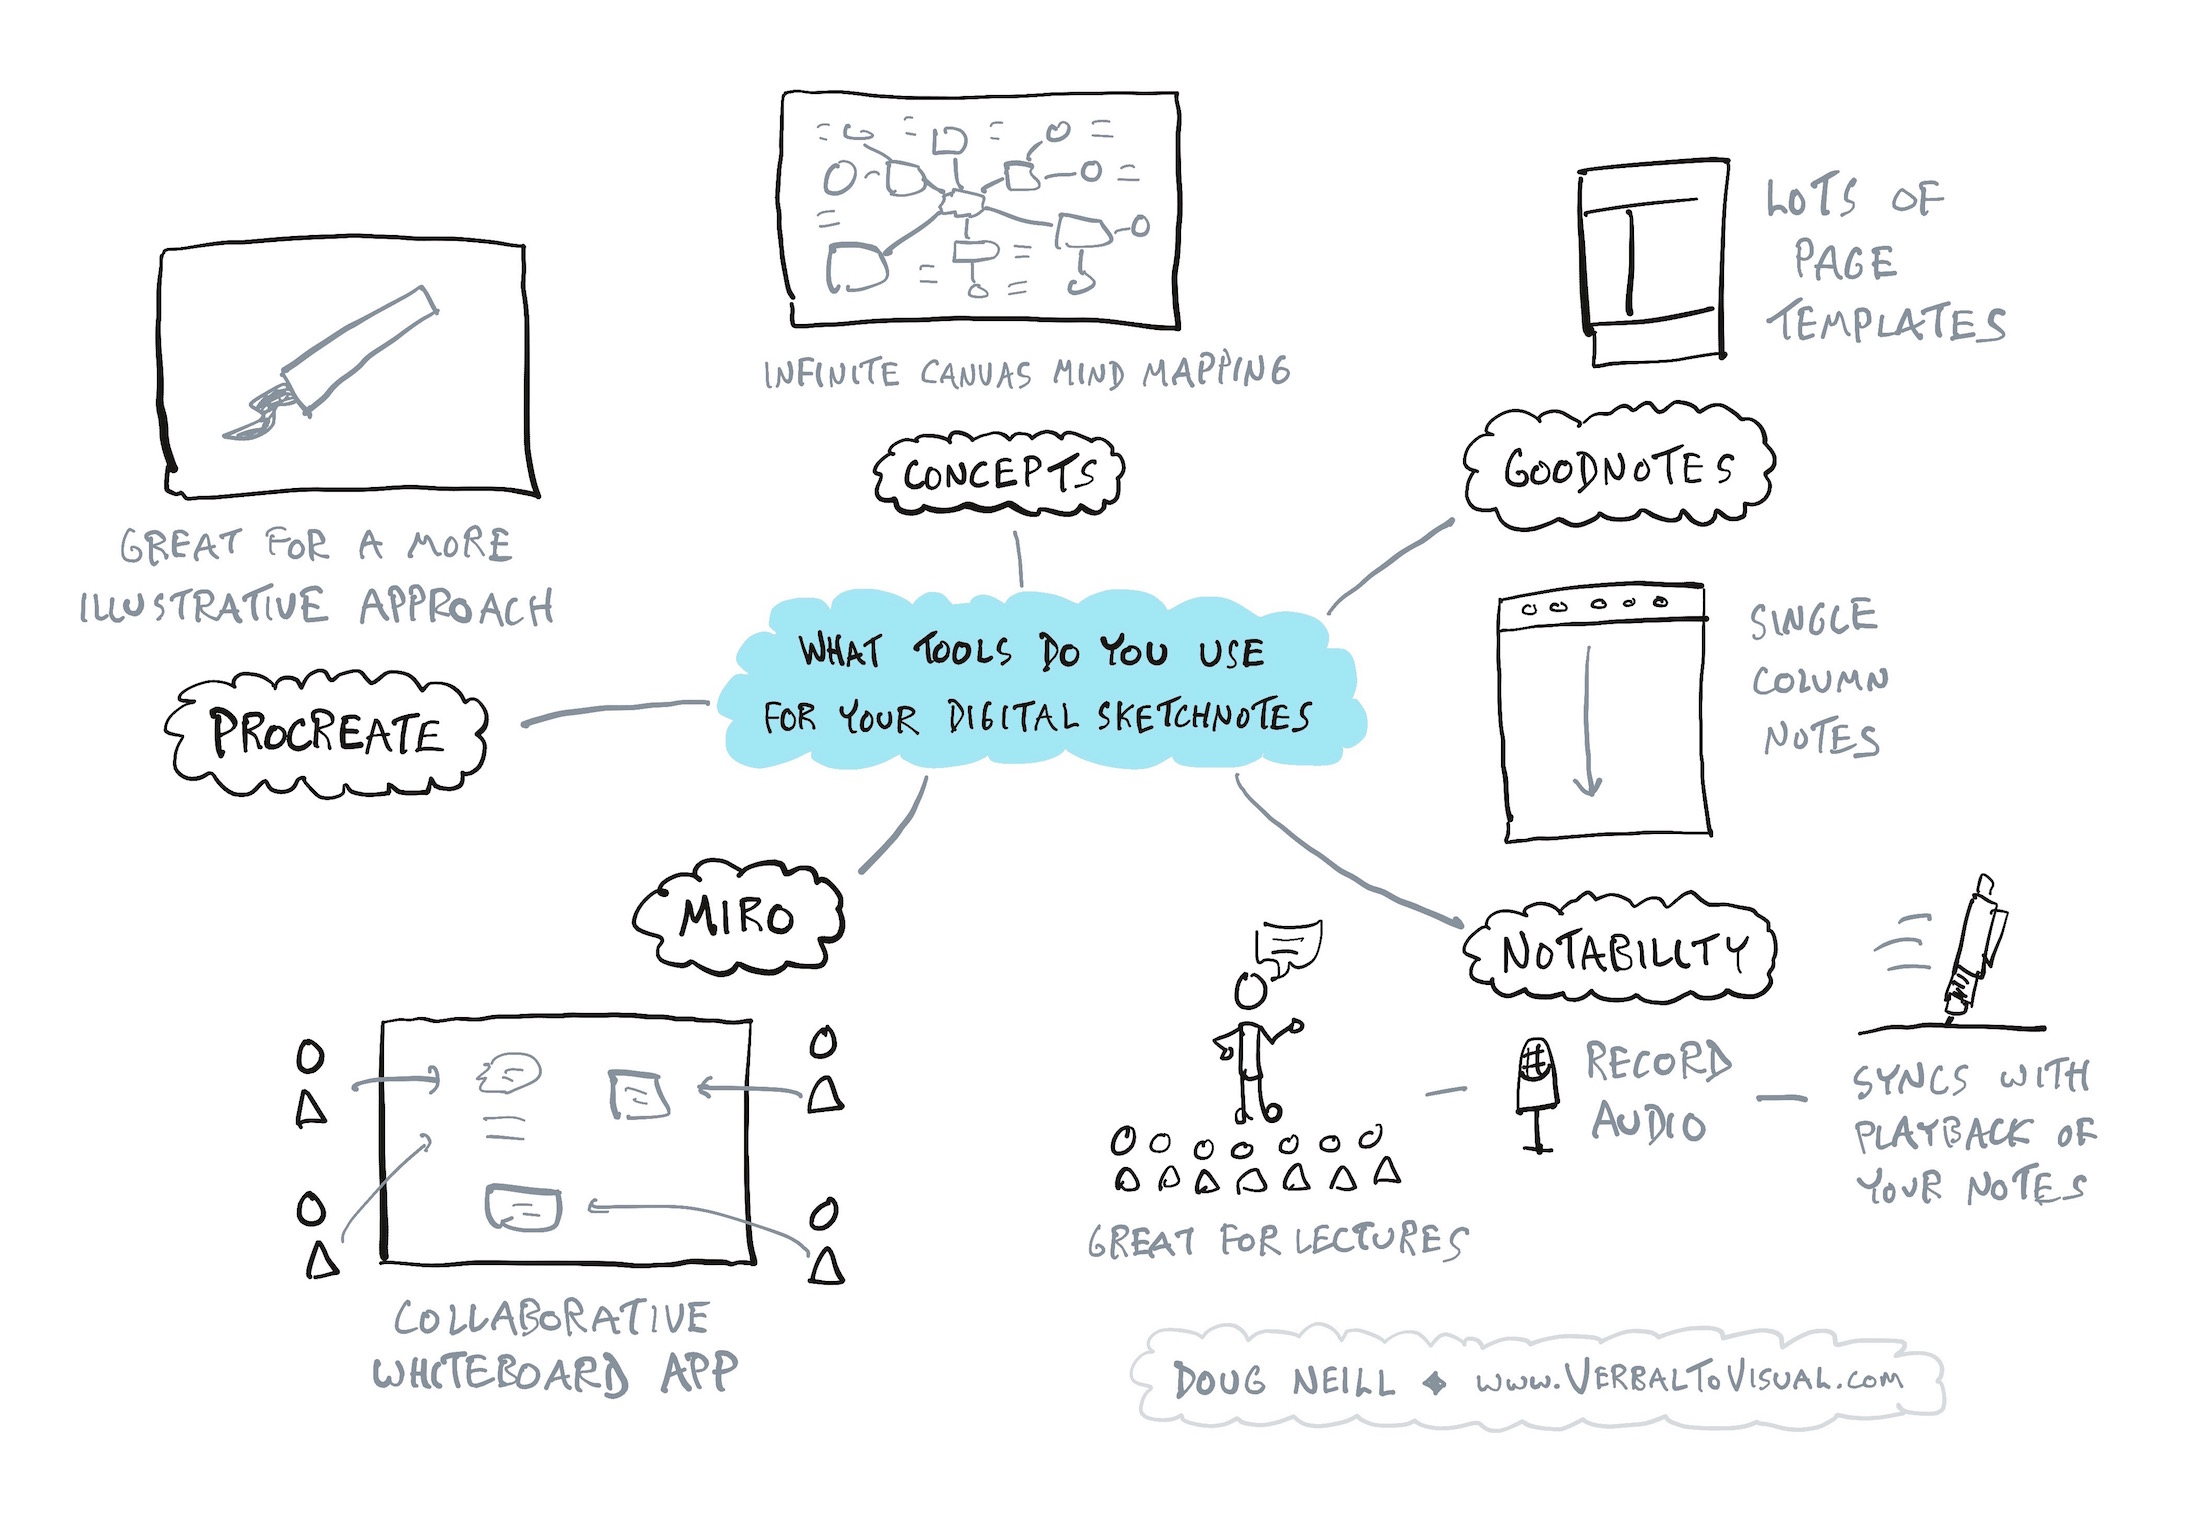 The best iPad apps for sketchnoting.